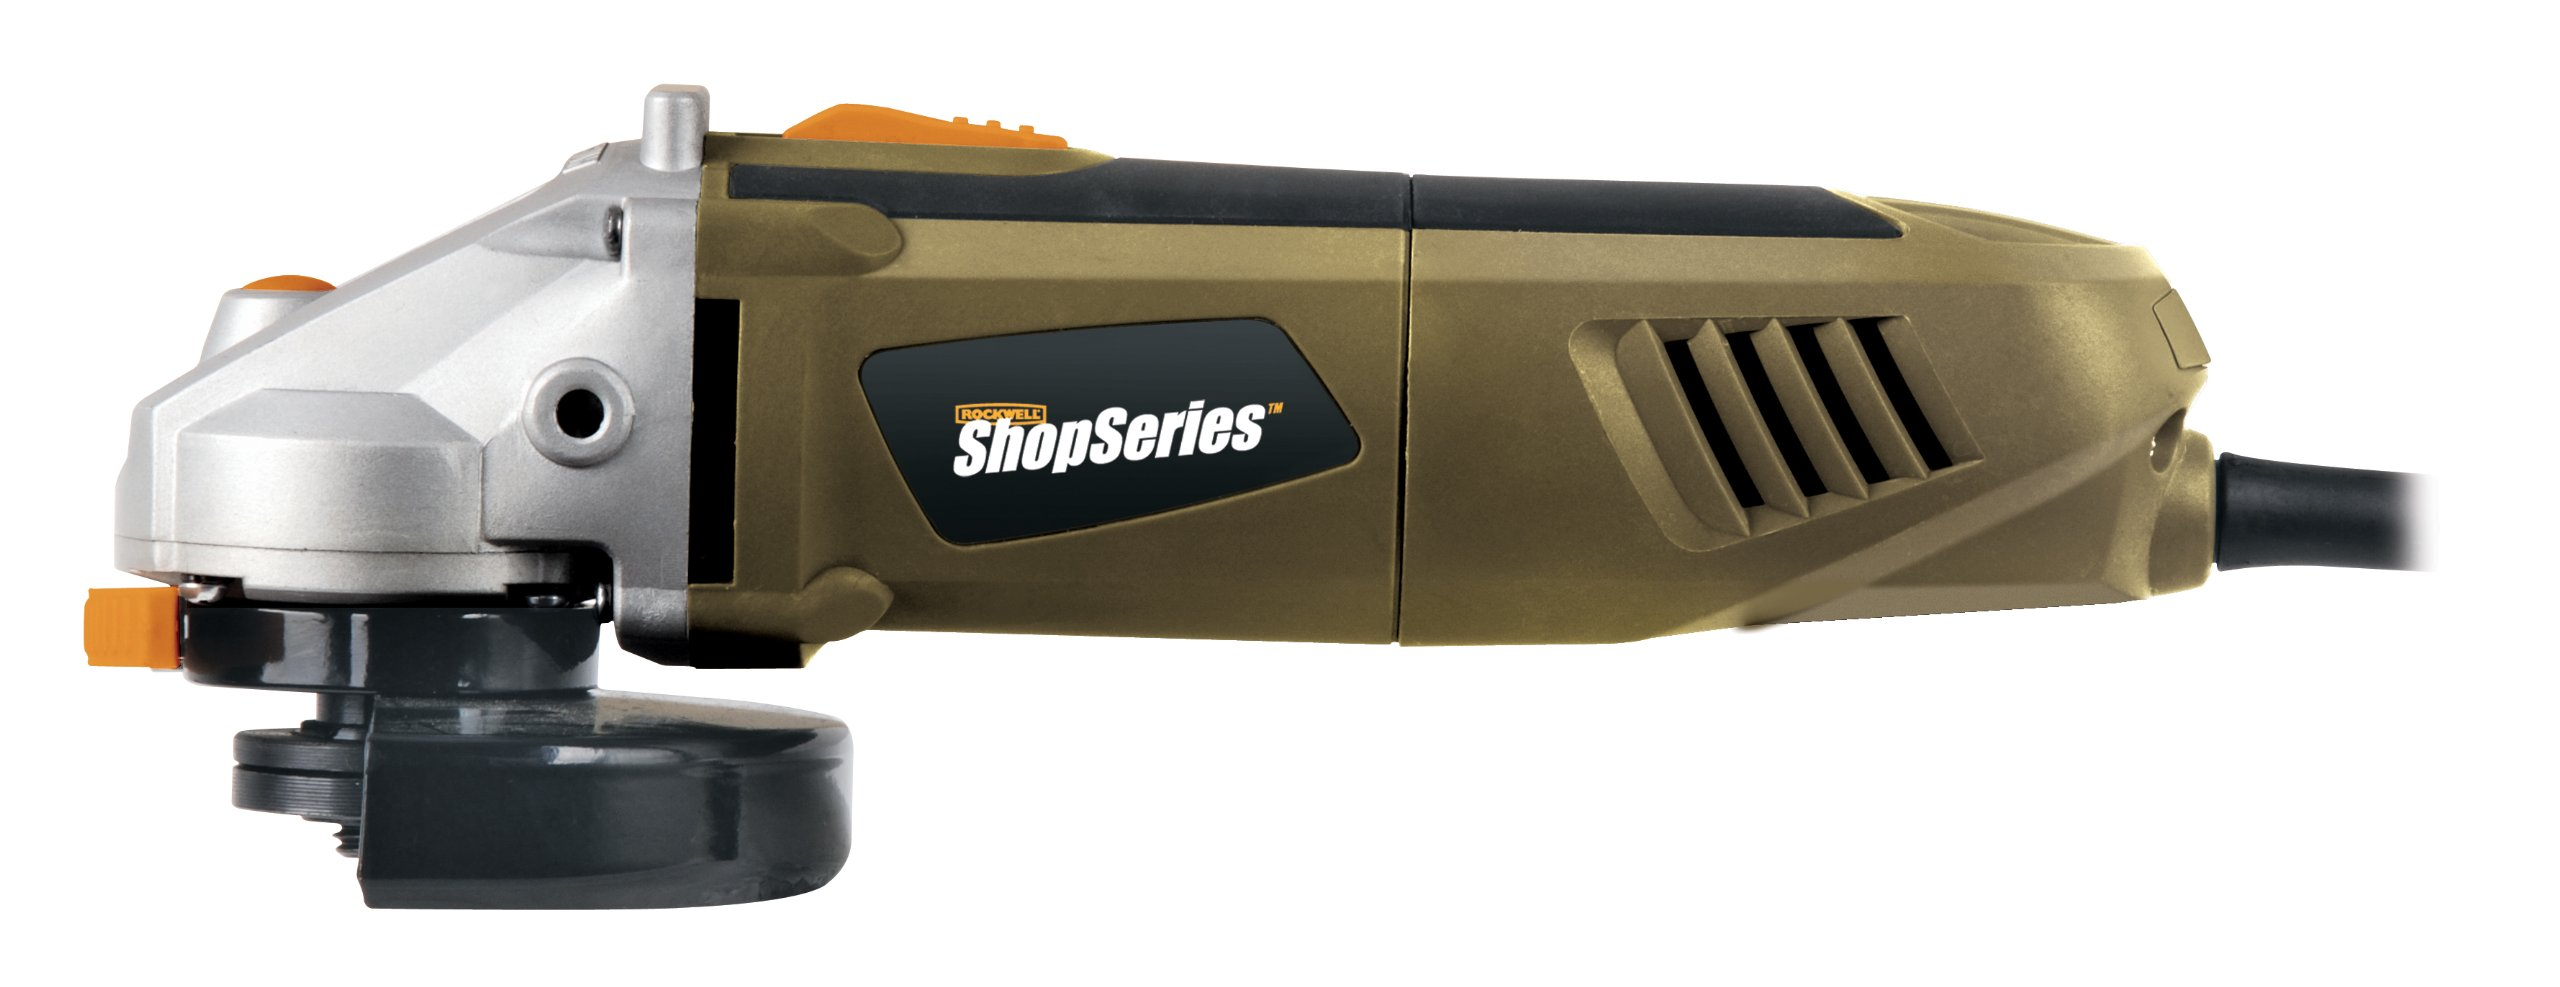 ShopSeries RC4700 4-1/2'' 6-Amp Angle Grinder